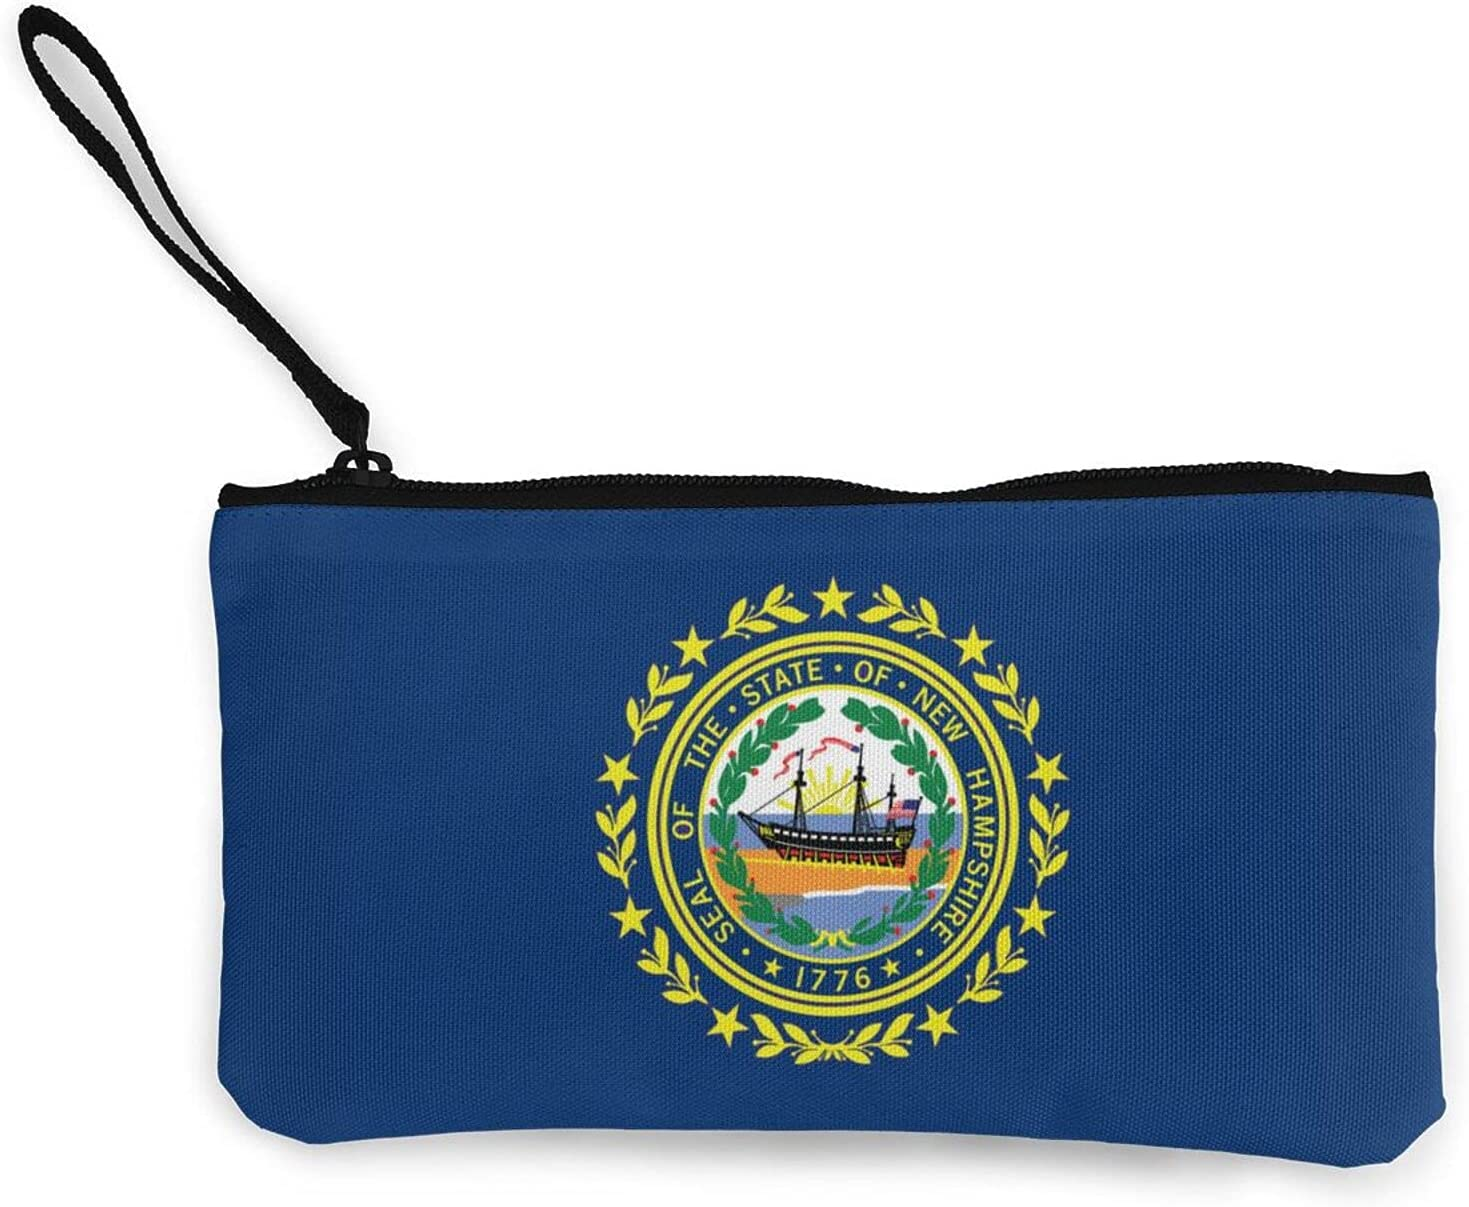 Flag Of New Hampshire Multifunction Travel Toiletry Pouch Small Canvas Coin Wallet Bag Zipper